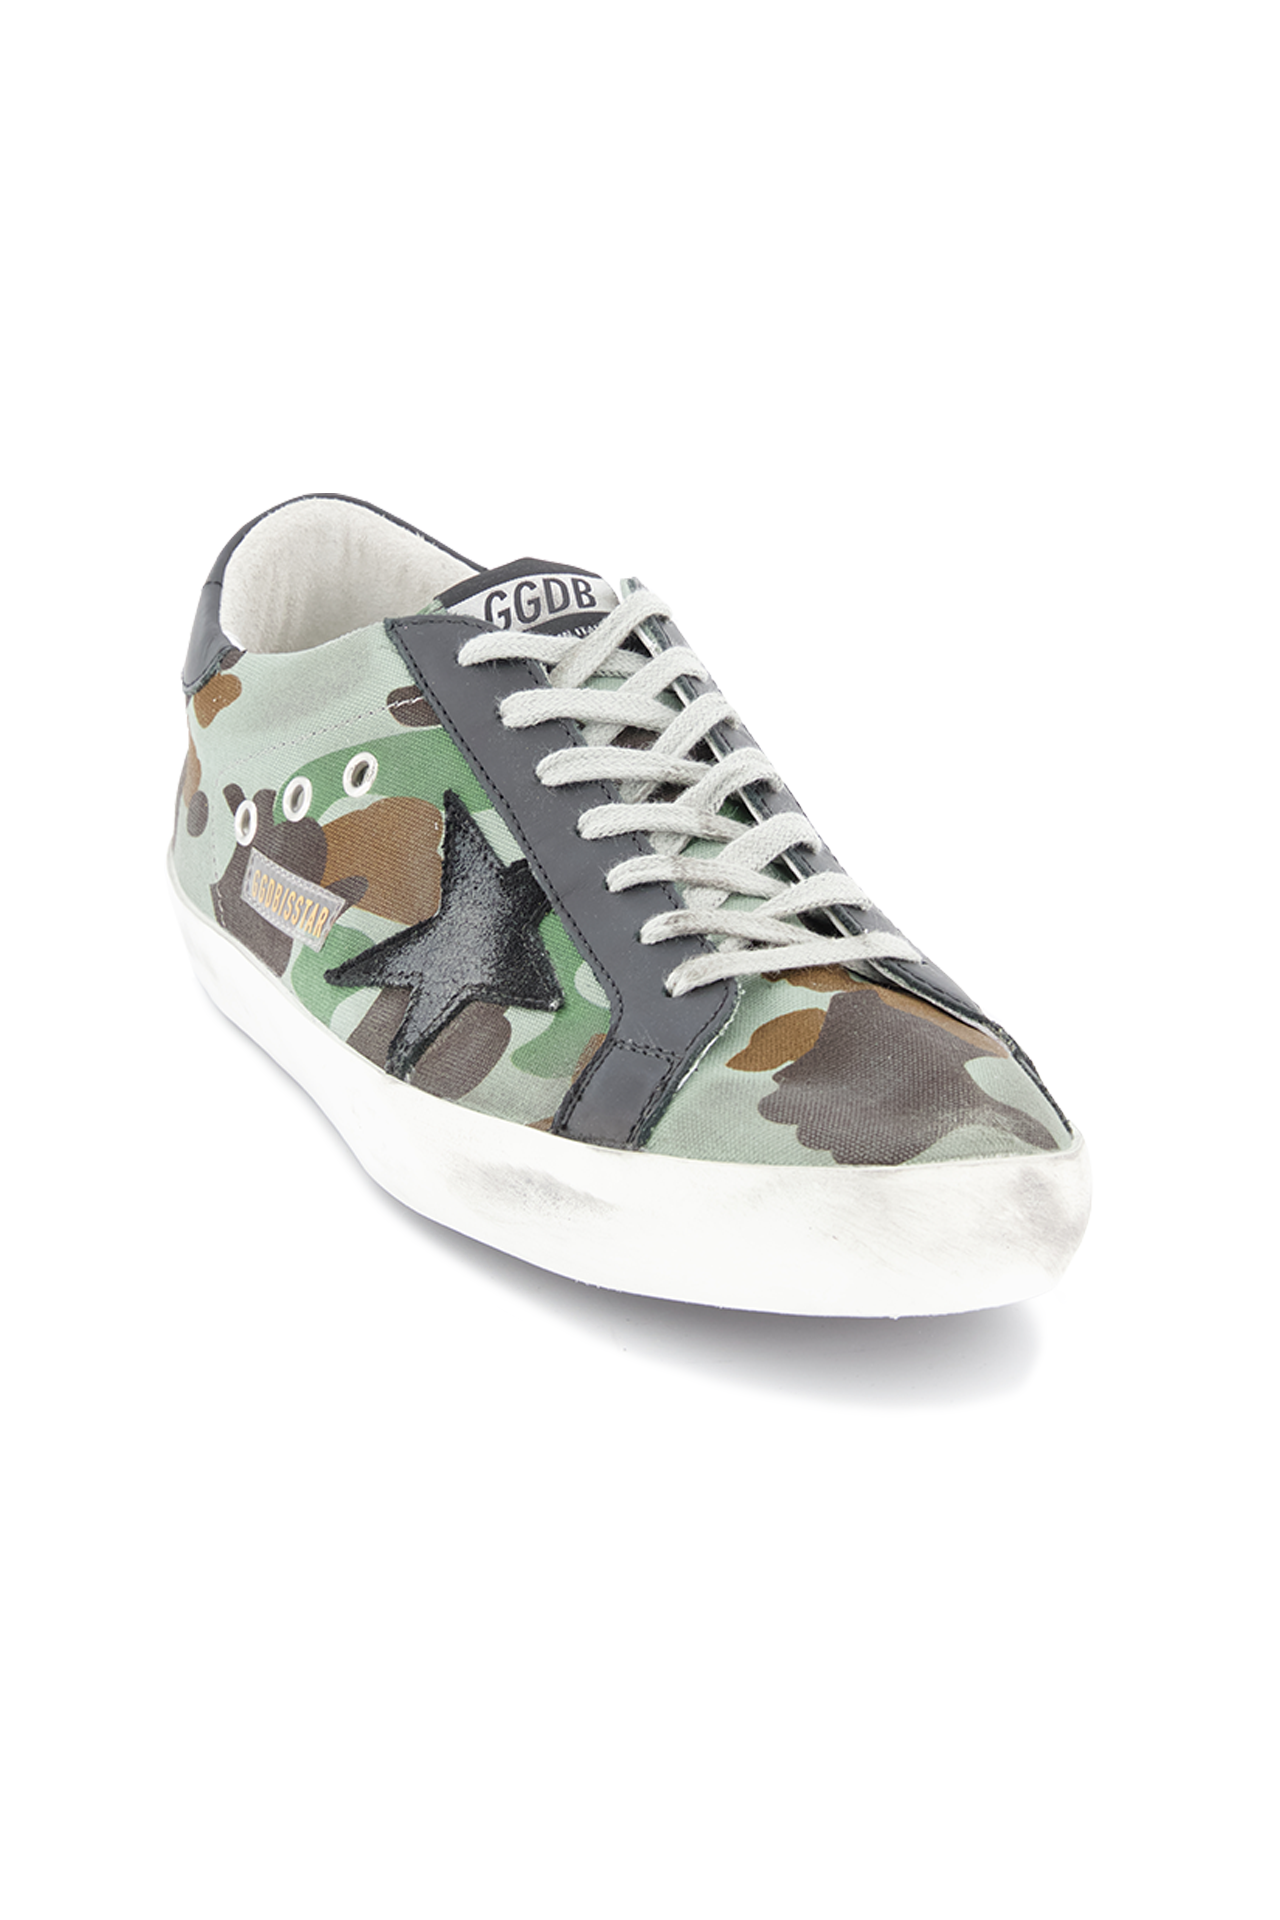 Front angled view image of Golden Goose Men's Superstar Low Top Sneakers Camouflage